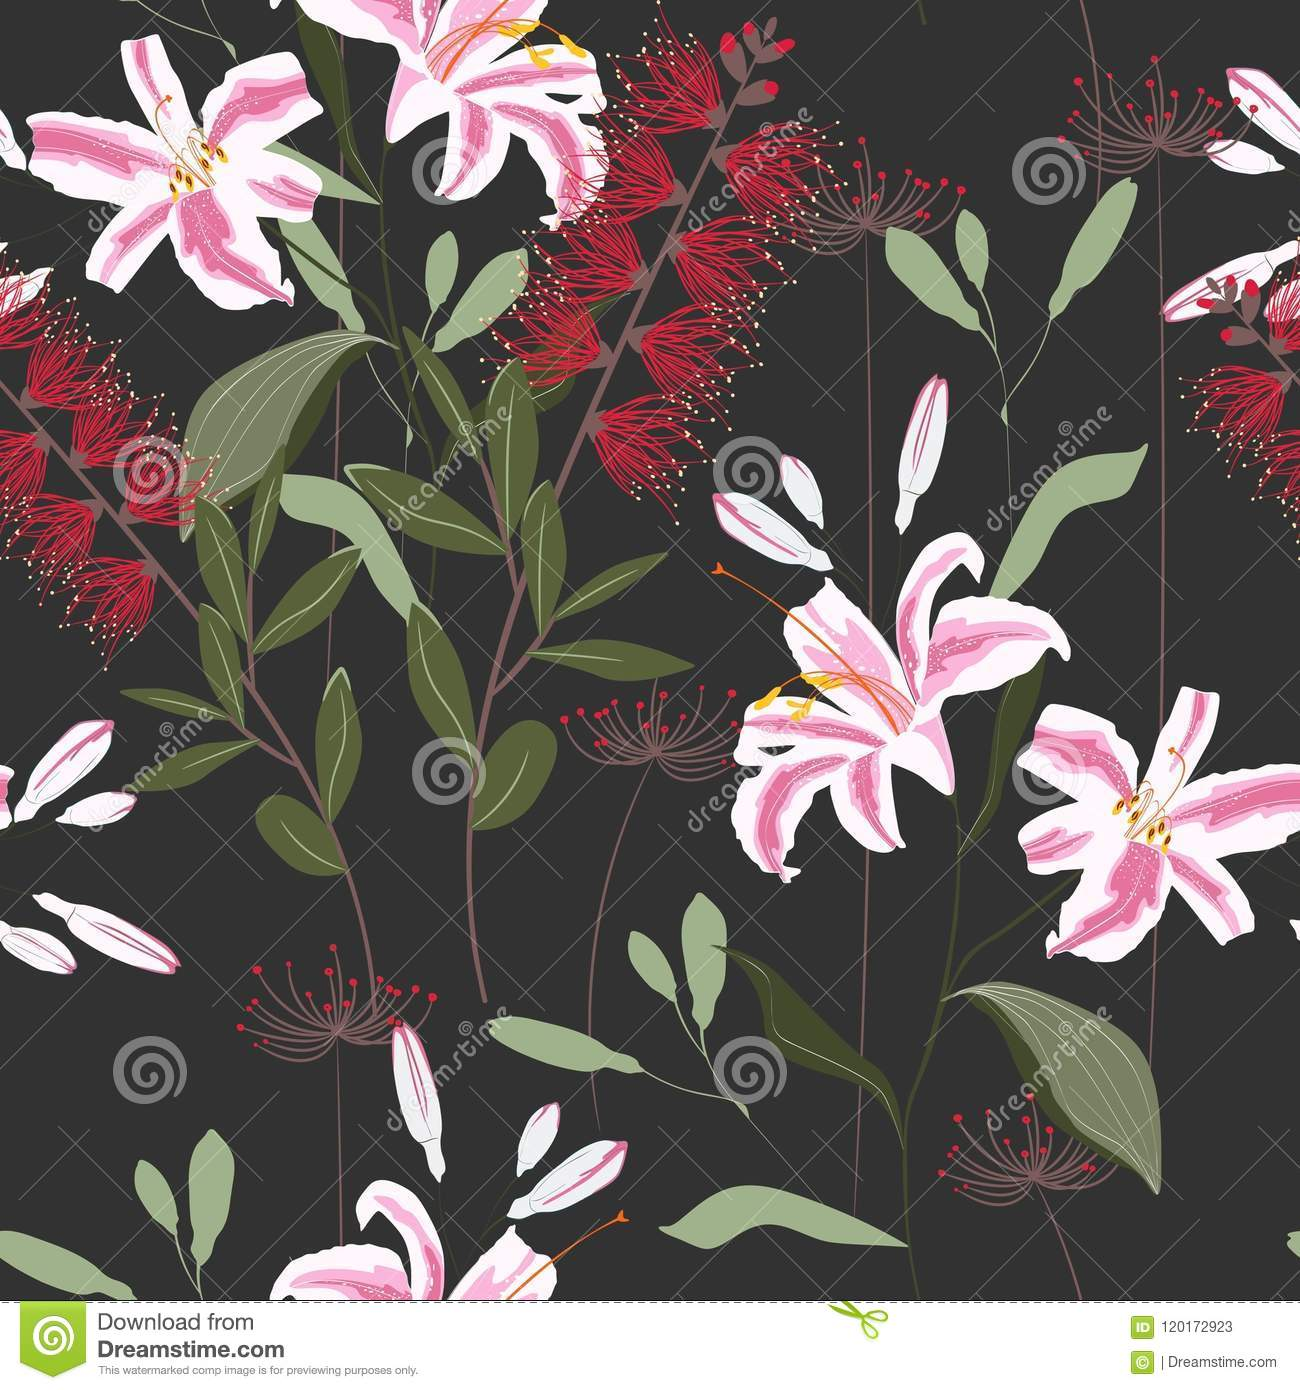 Tropical Plants Royal Lilies Flowers And Leaves Seamless Pattern On